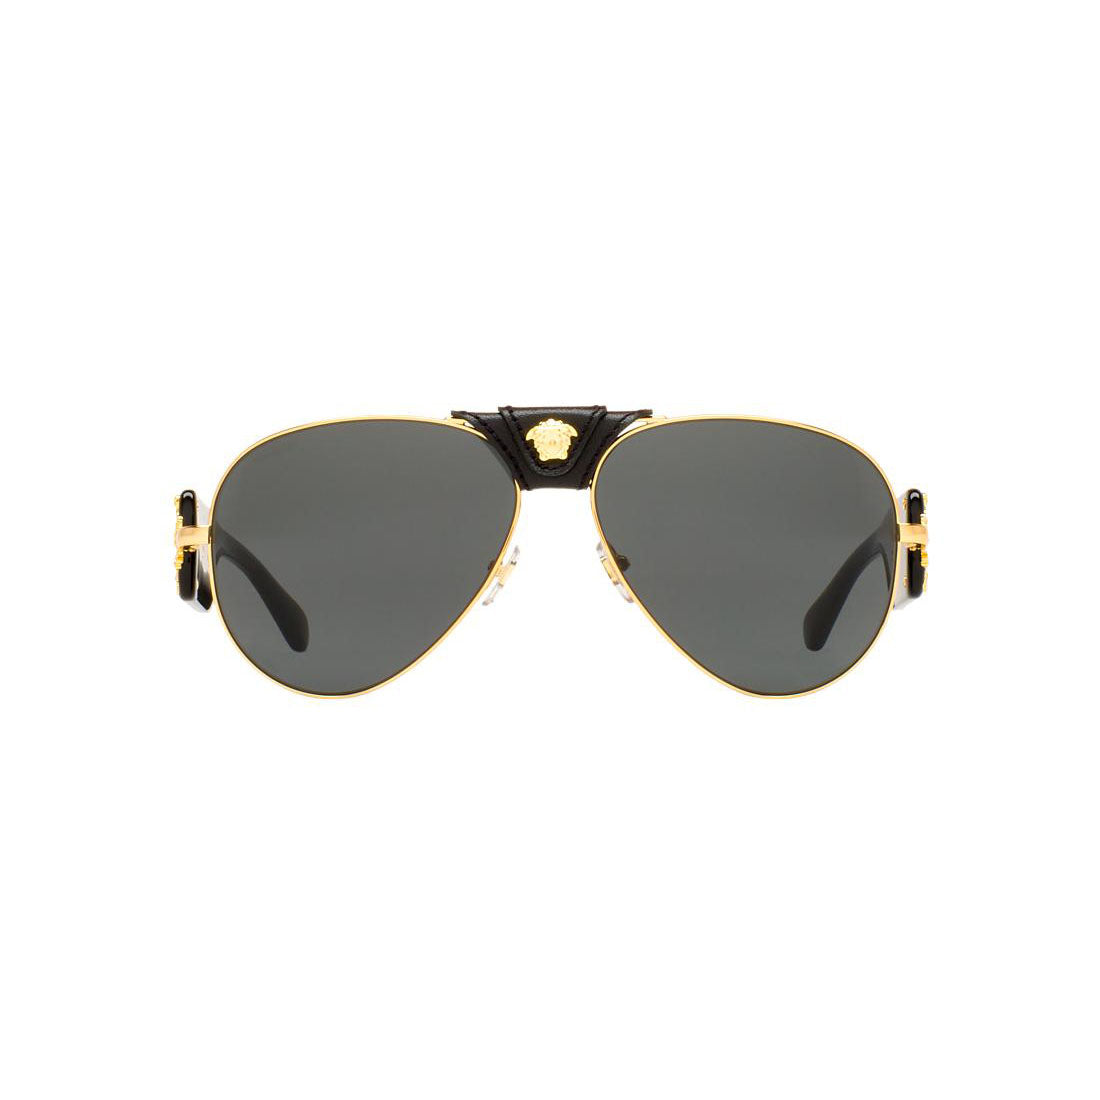 Versace Sunglasses Model# 2150-Q 1002/87